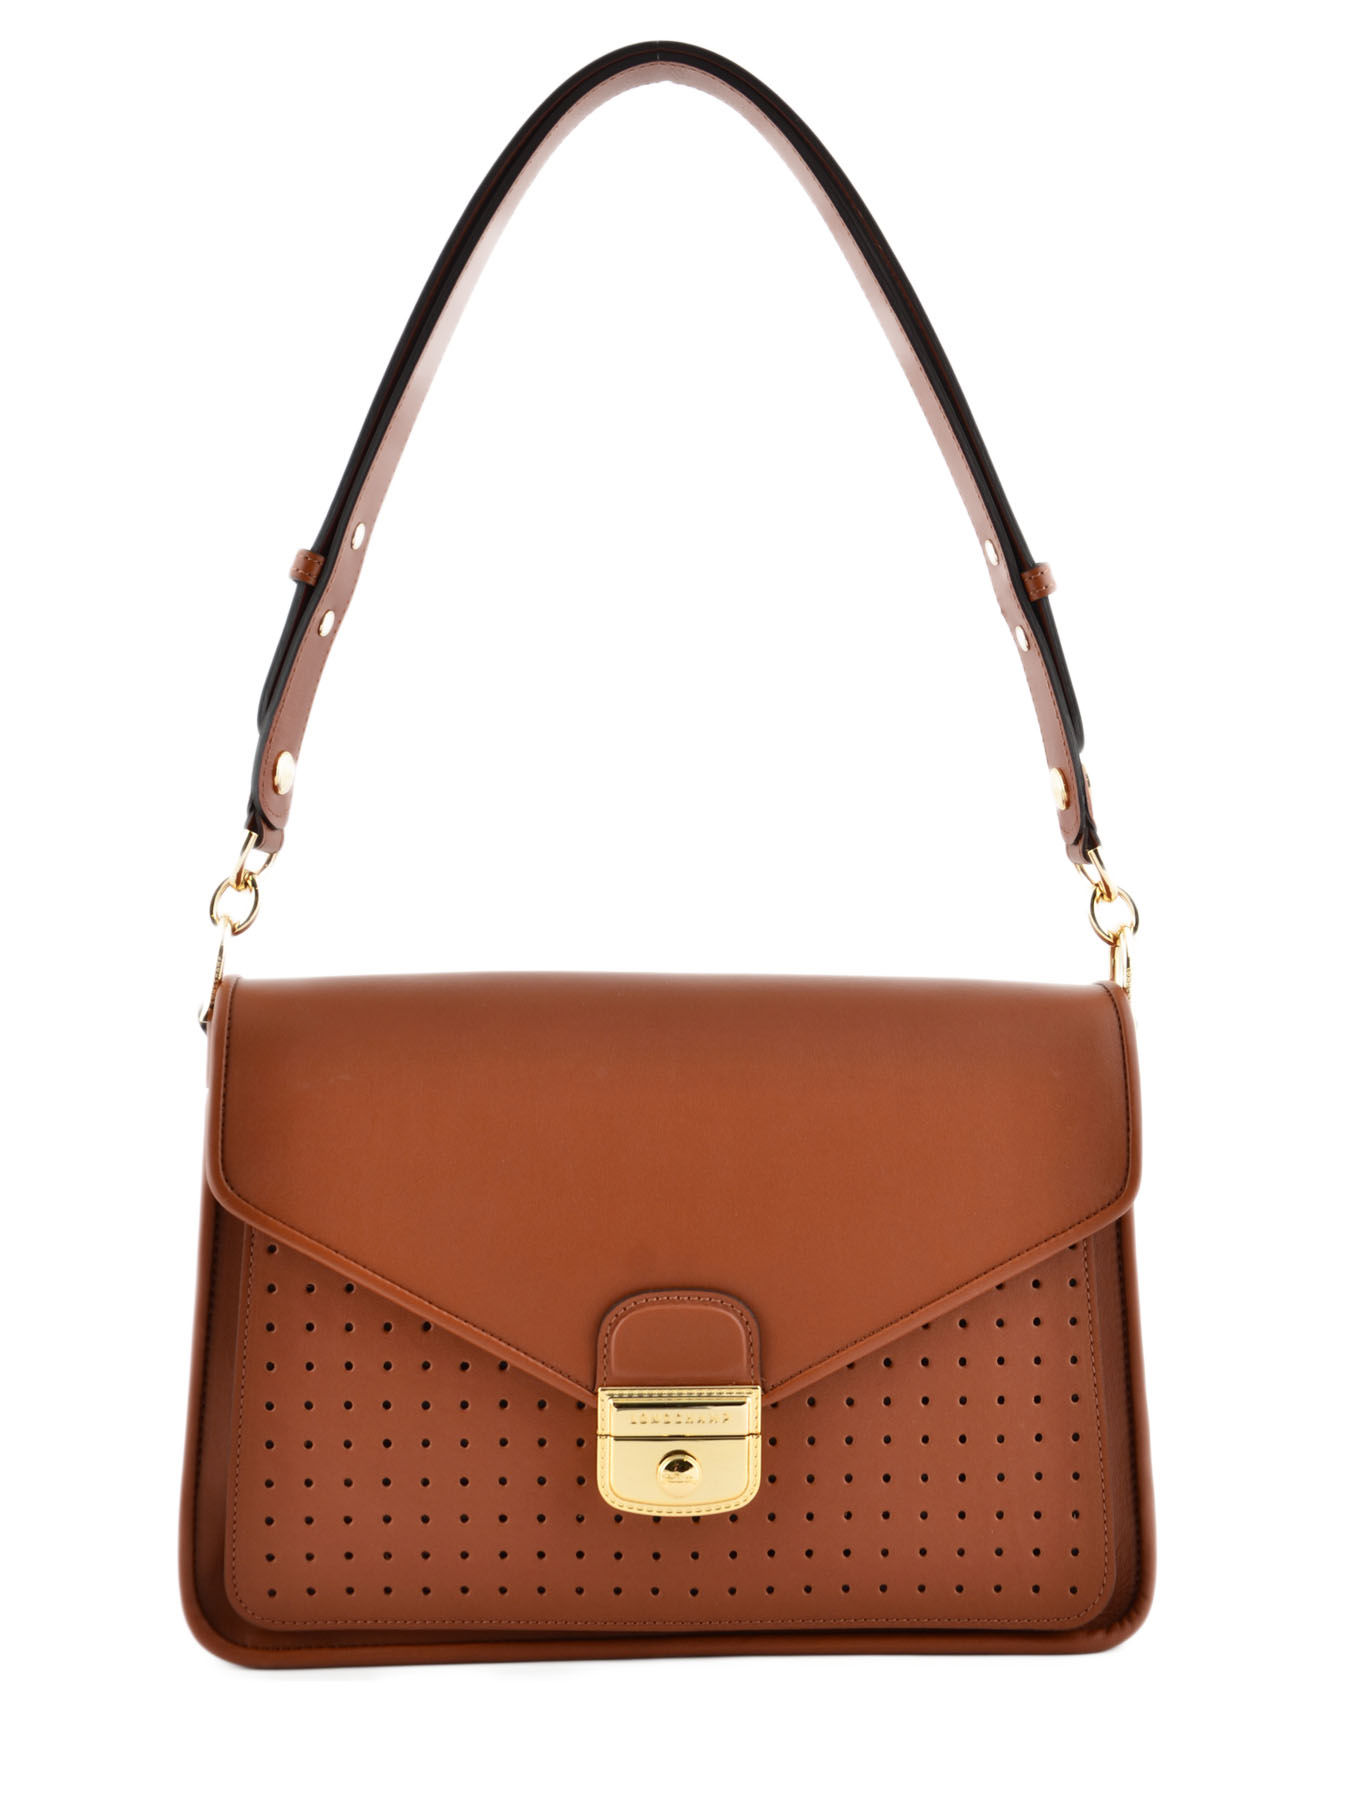 301d441b4e79 ... Longchamp Mademoiselle longchamp Hobo bag Brown ...